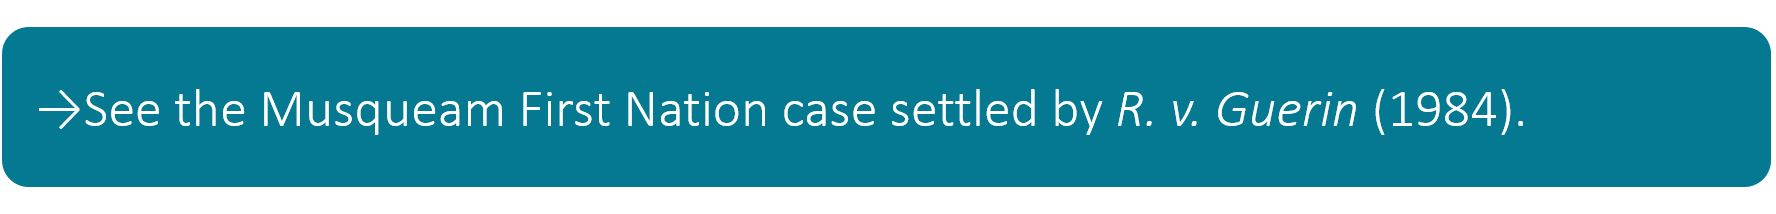 See the Musqueam First Nation case settled by R. v. Guerin (1984).